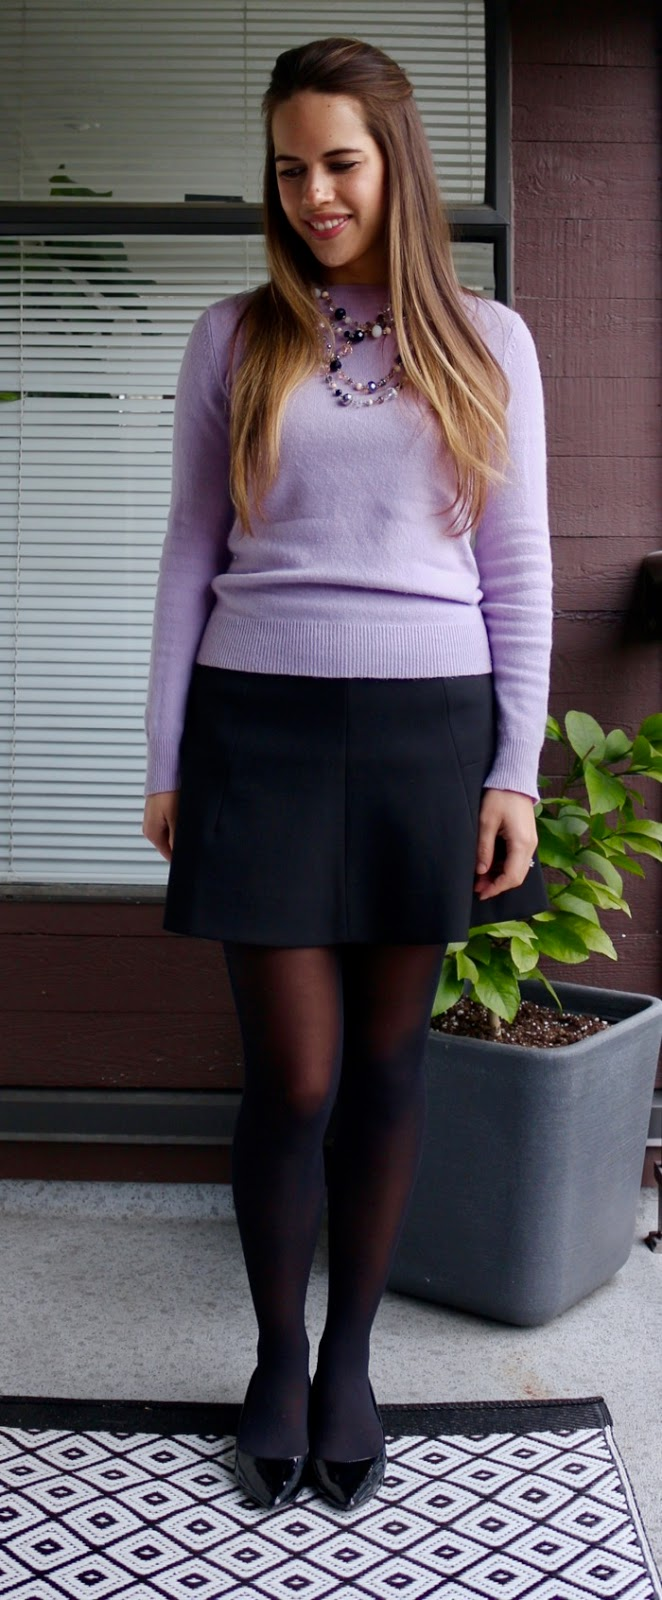 Jules in Flats - Lilac Cashmere Sweater with Skater Skirt for Work